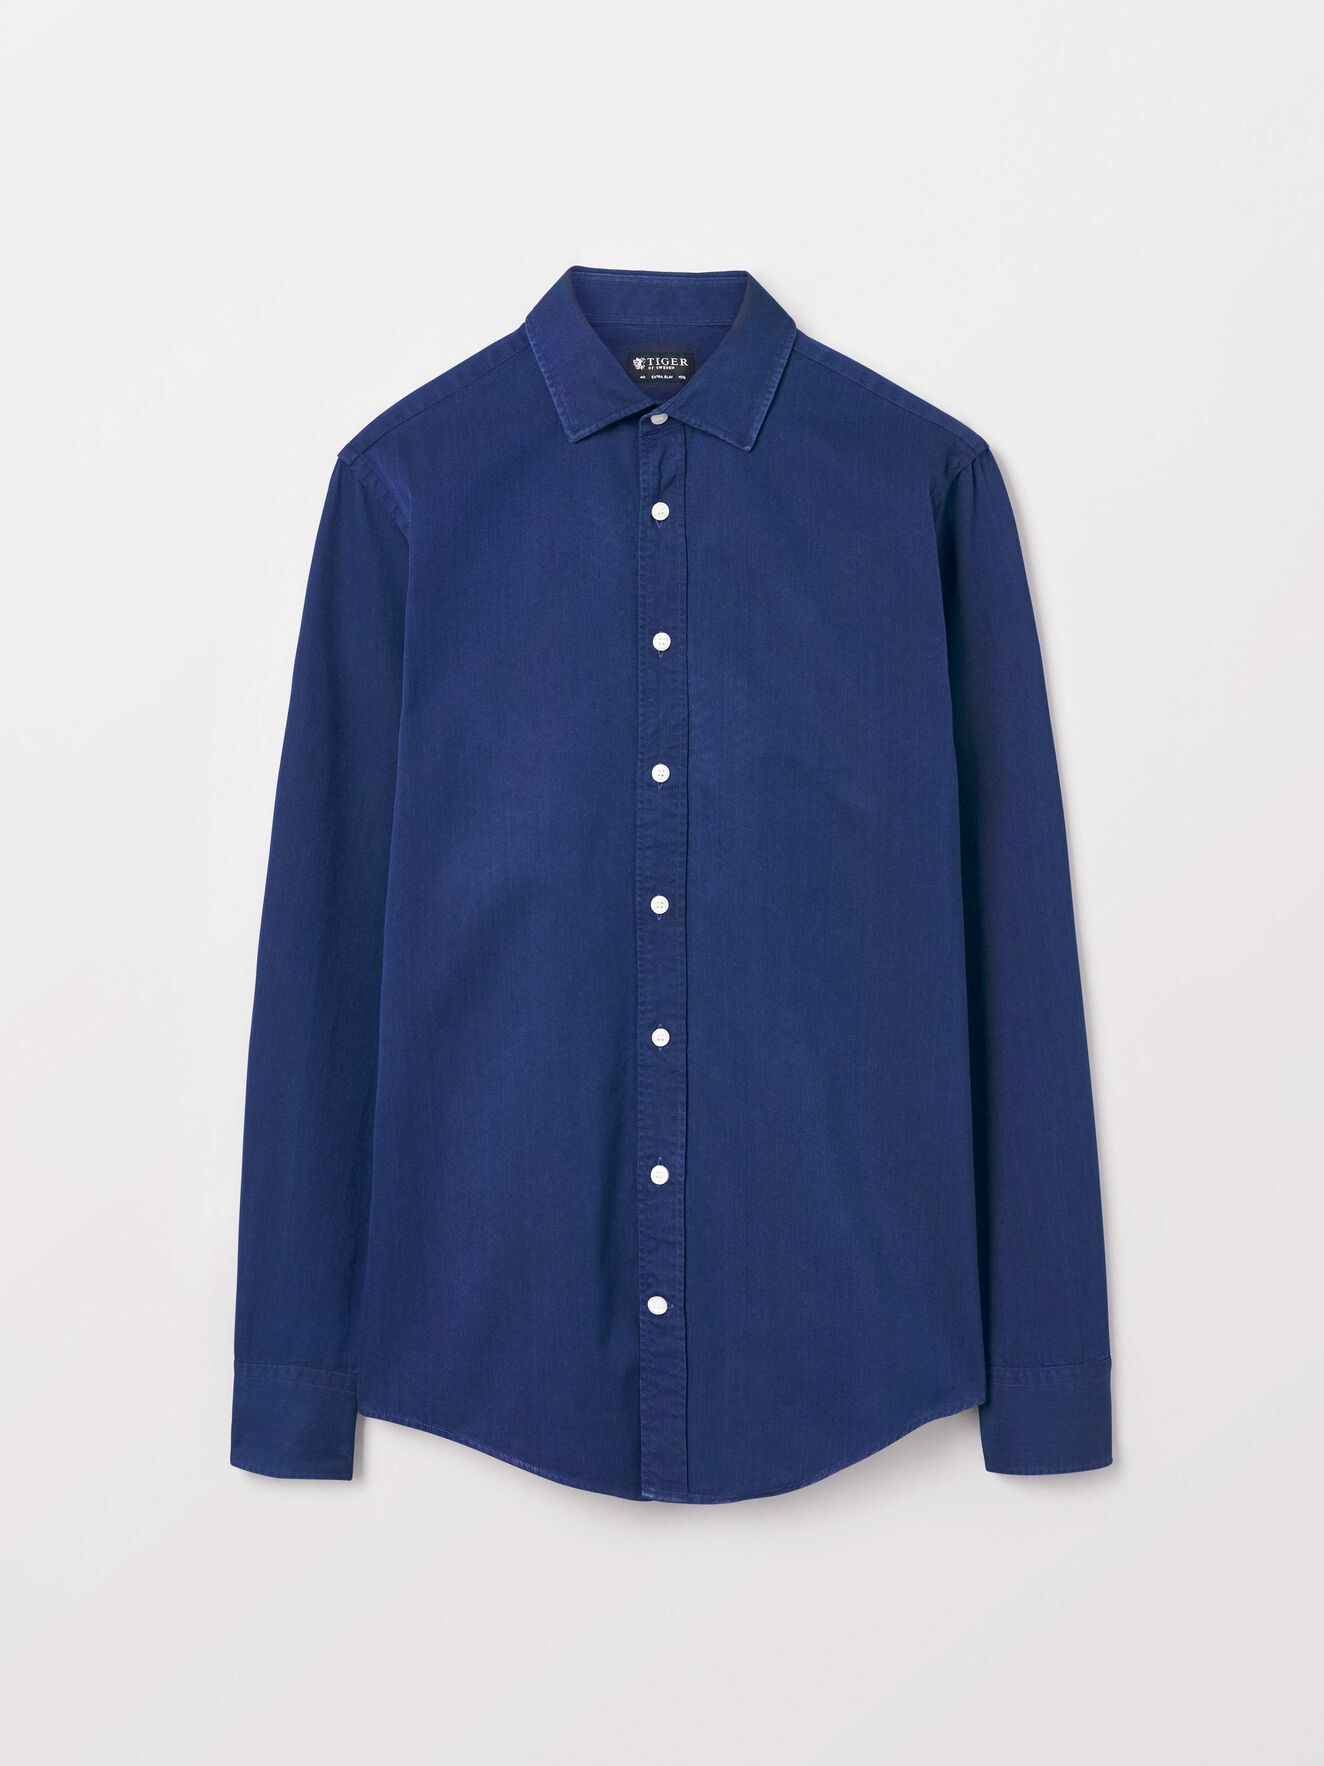 Fridolf Shirt in Royal Blue from Tiger of Sweden